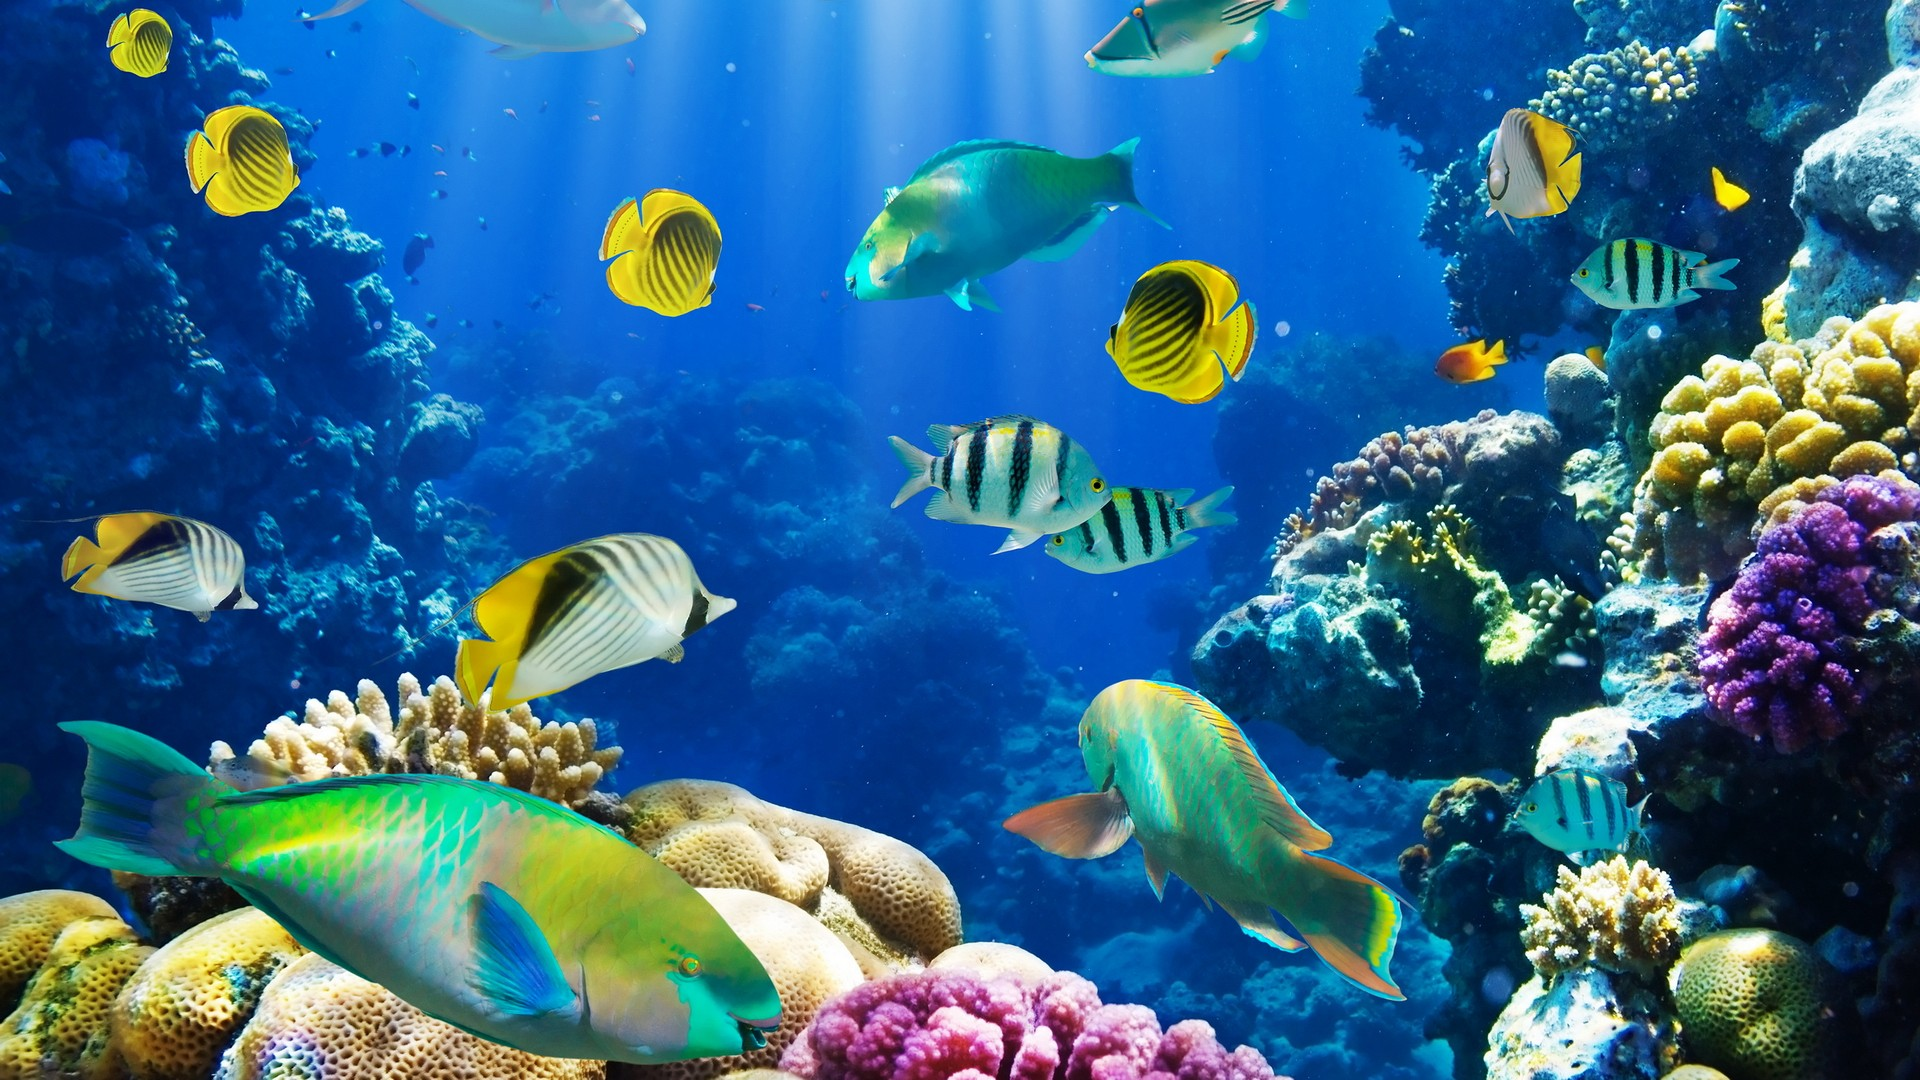 Reef Fish Wallpaper